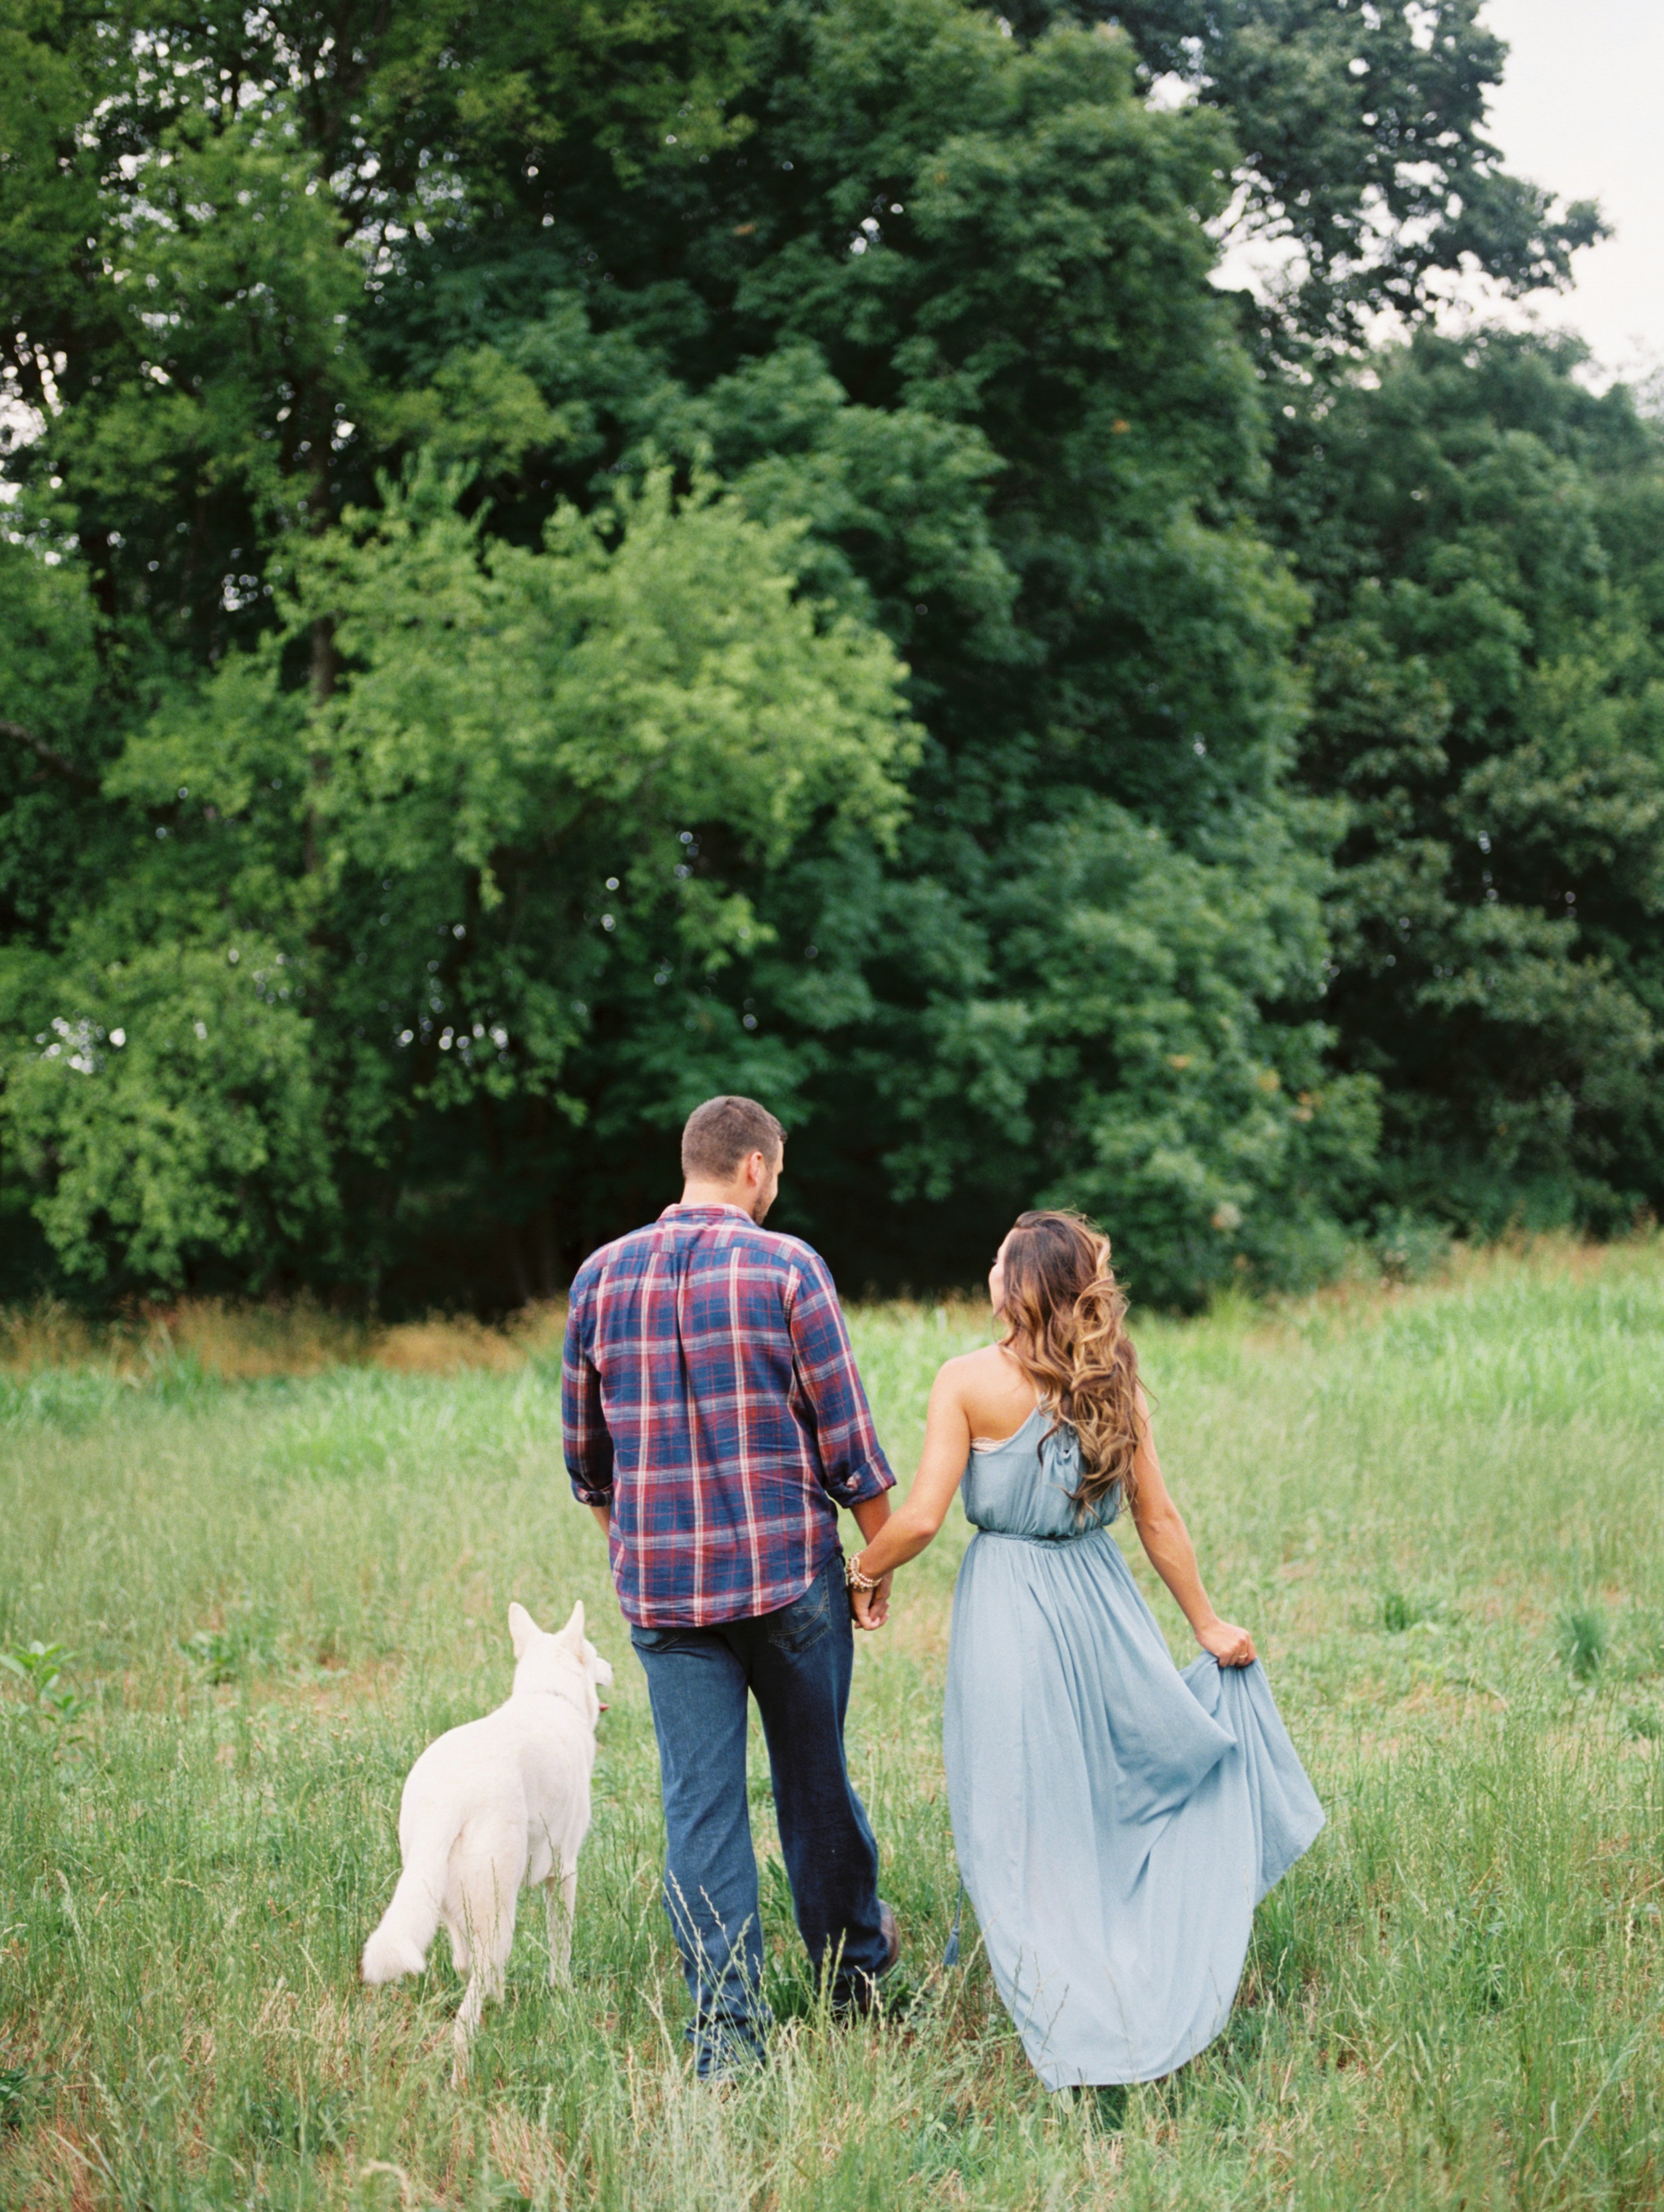 Brittany_Wes_Farm_Engagement_Abigail_Malone_Photography-28.jpg